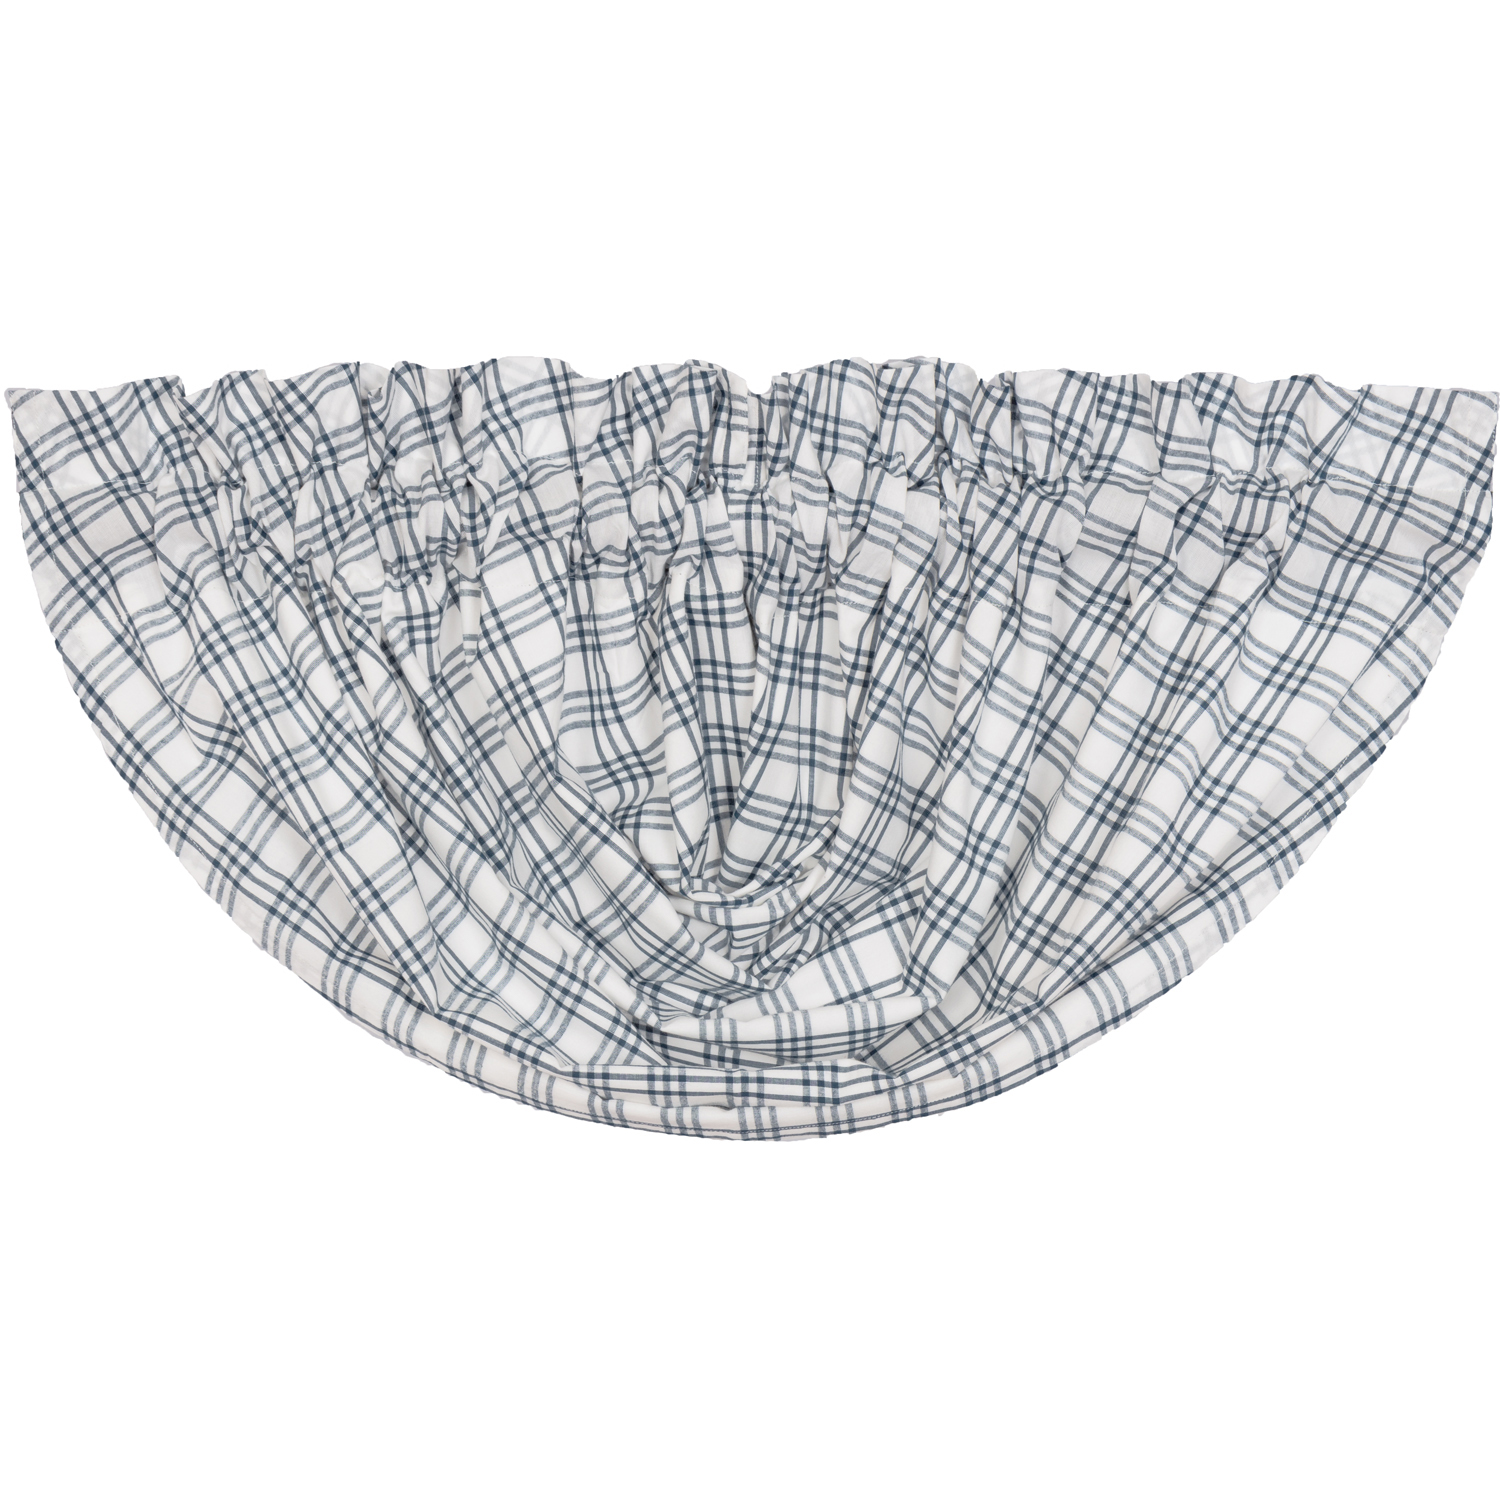 Sawyer Mill Blue Plaid Balloon Valance 15x60